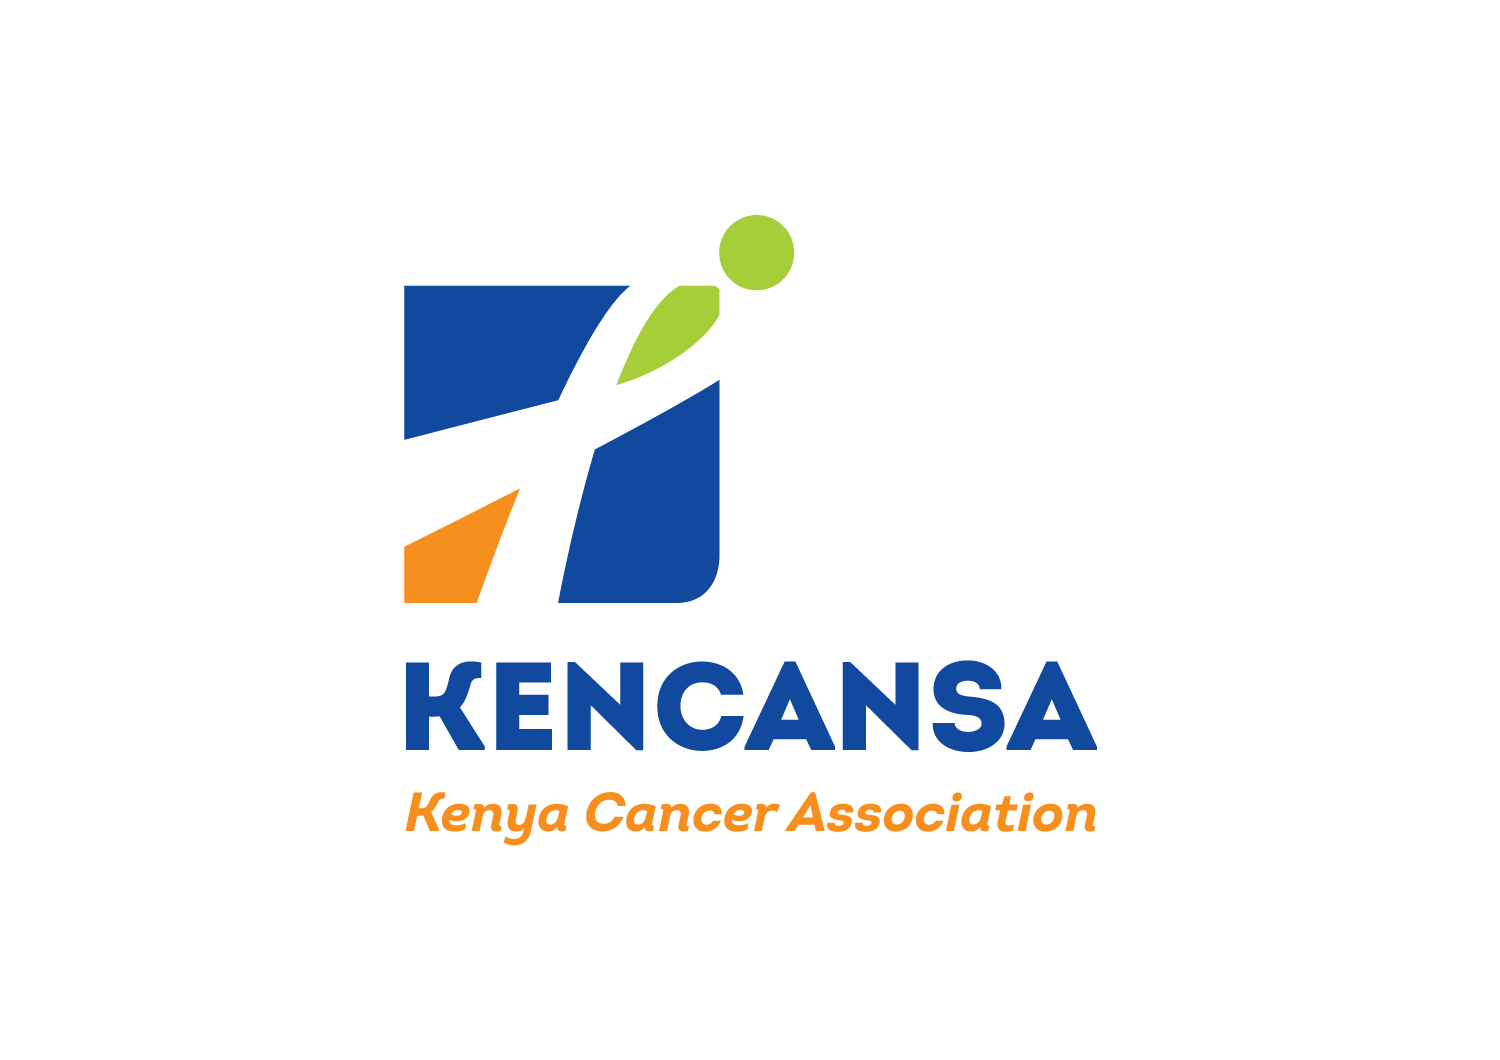 Kenya Cancer Association (KENCANSA)